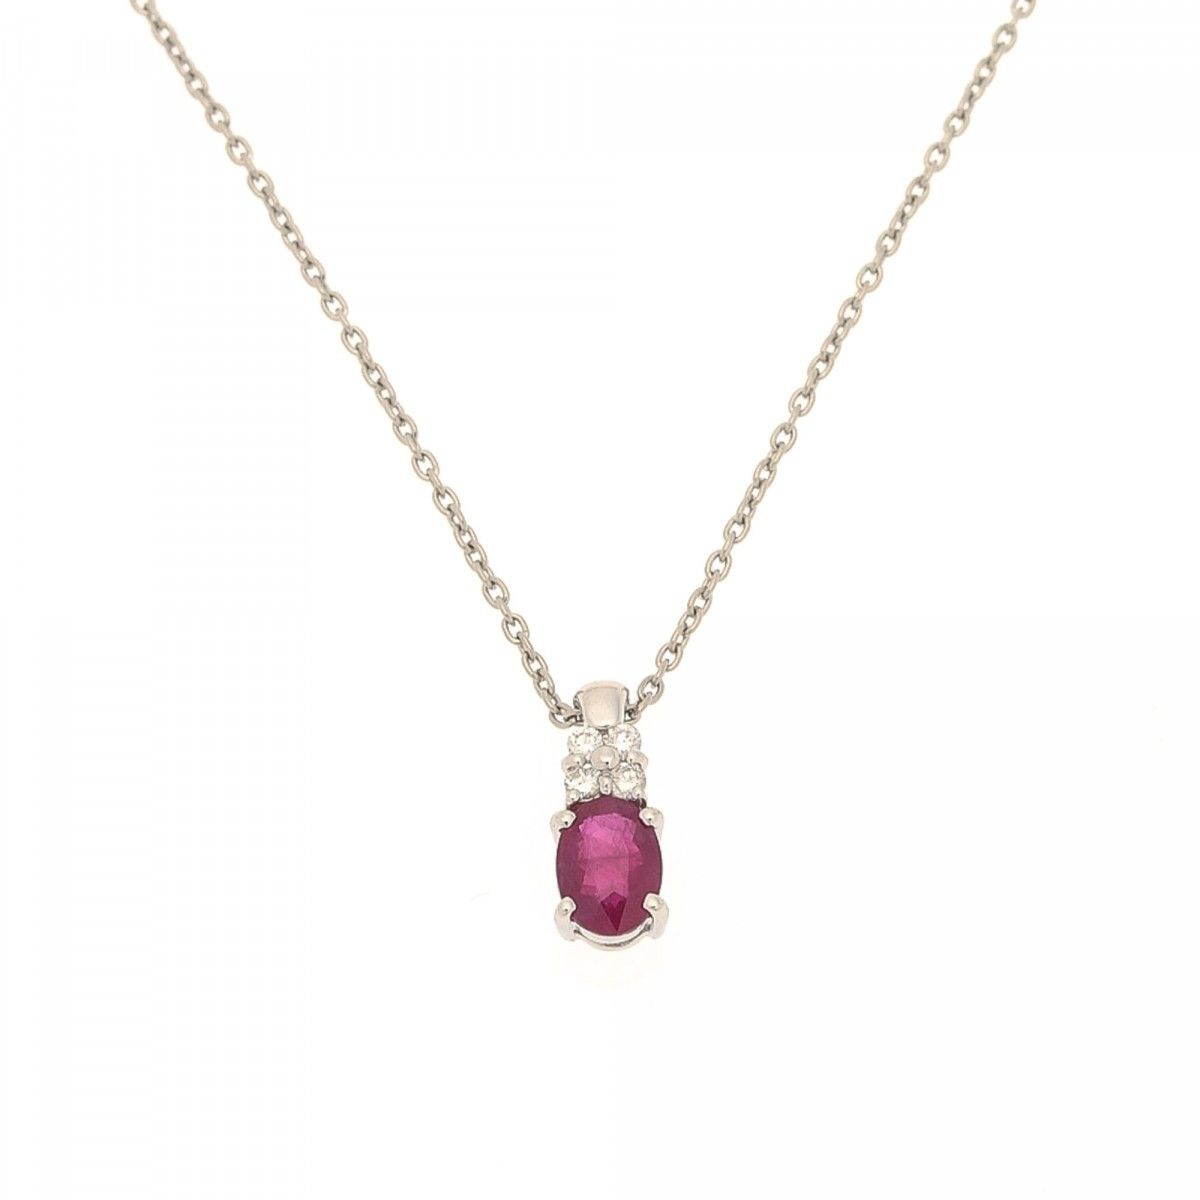 en owned necklaces lxrandco pre estate jewelry and diamond large vintage platinum luxury ruby necklace us